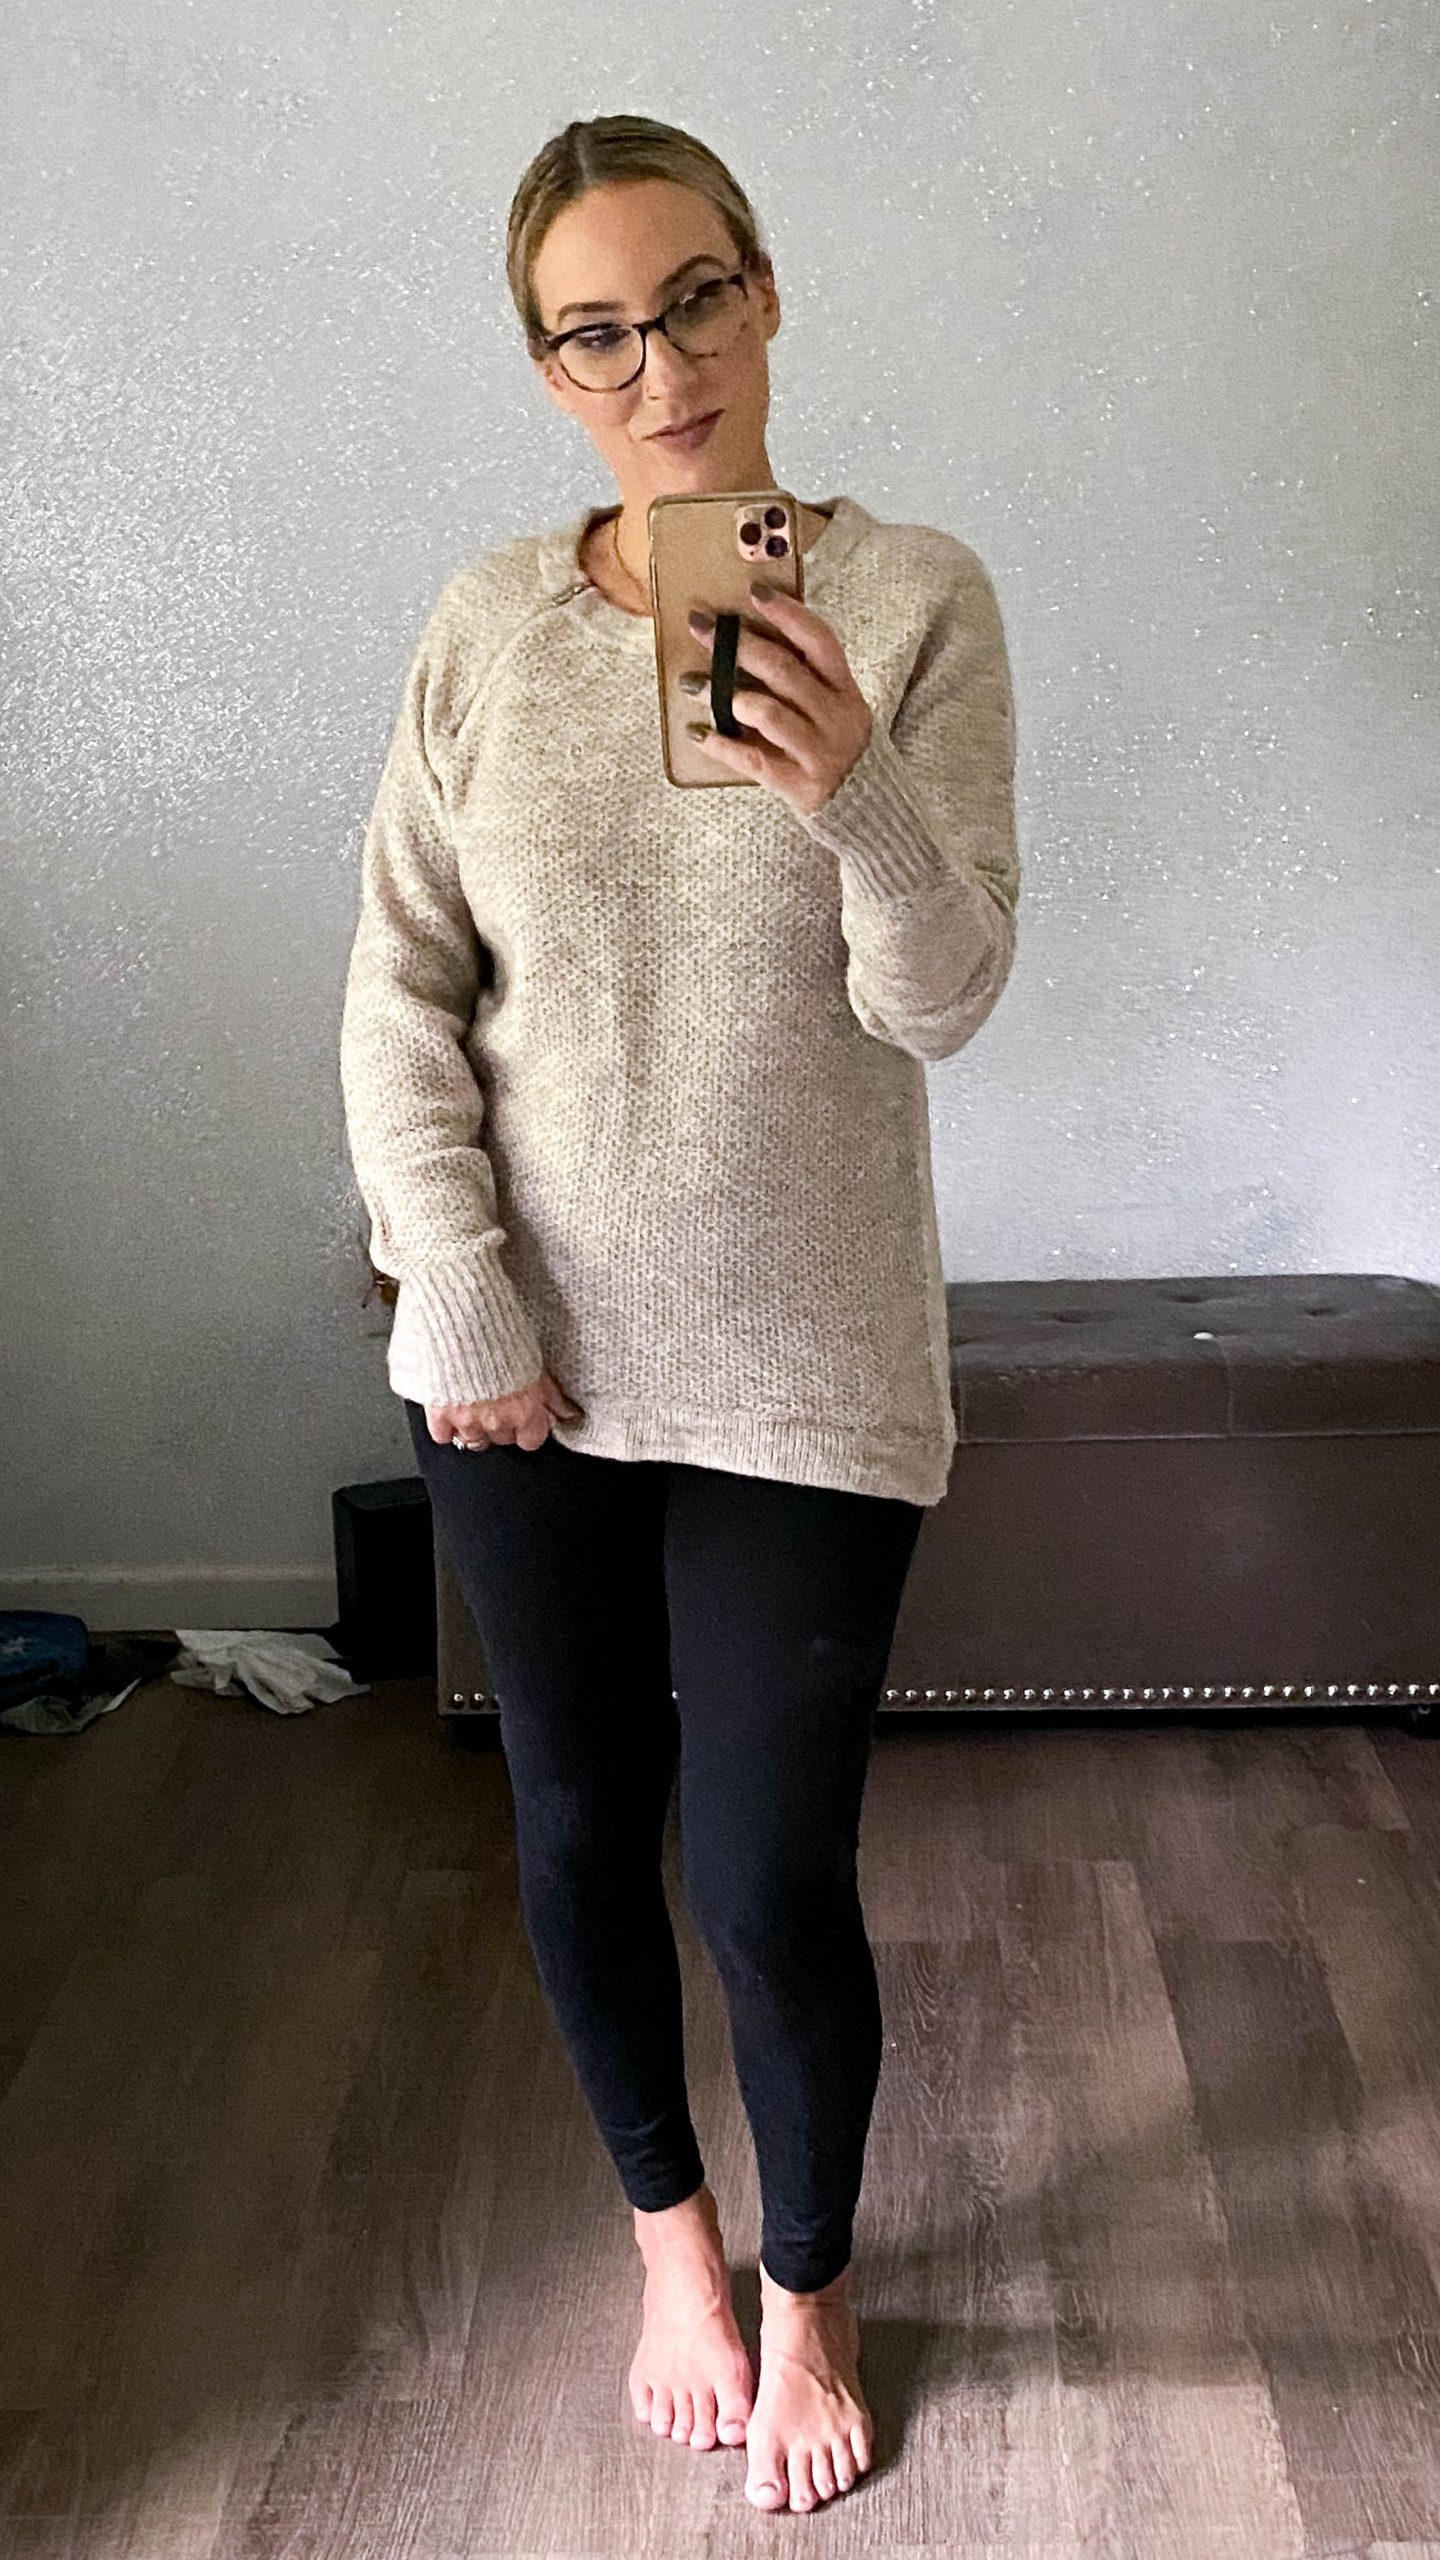 Bodysuits, jumpsuits, dresses...sweaters perfect to wear w/ leggings.... Abercrombie is rockin' stay-at-home style. Our comfy, cute picks inside.